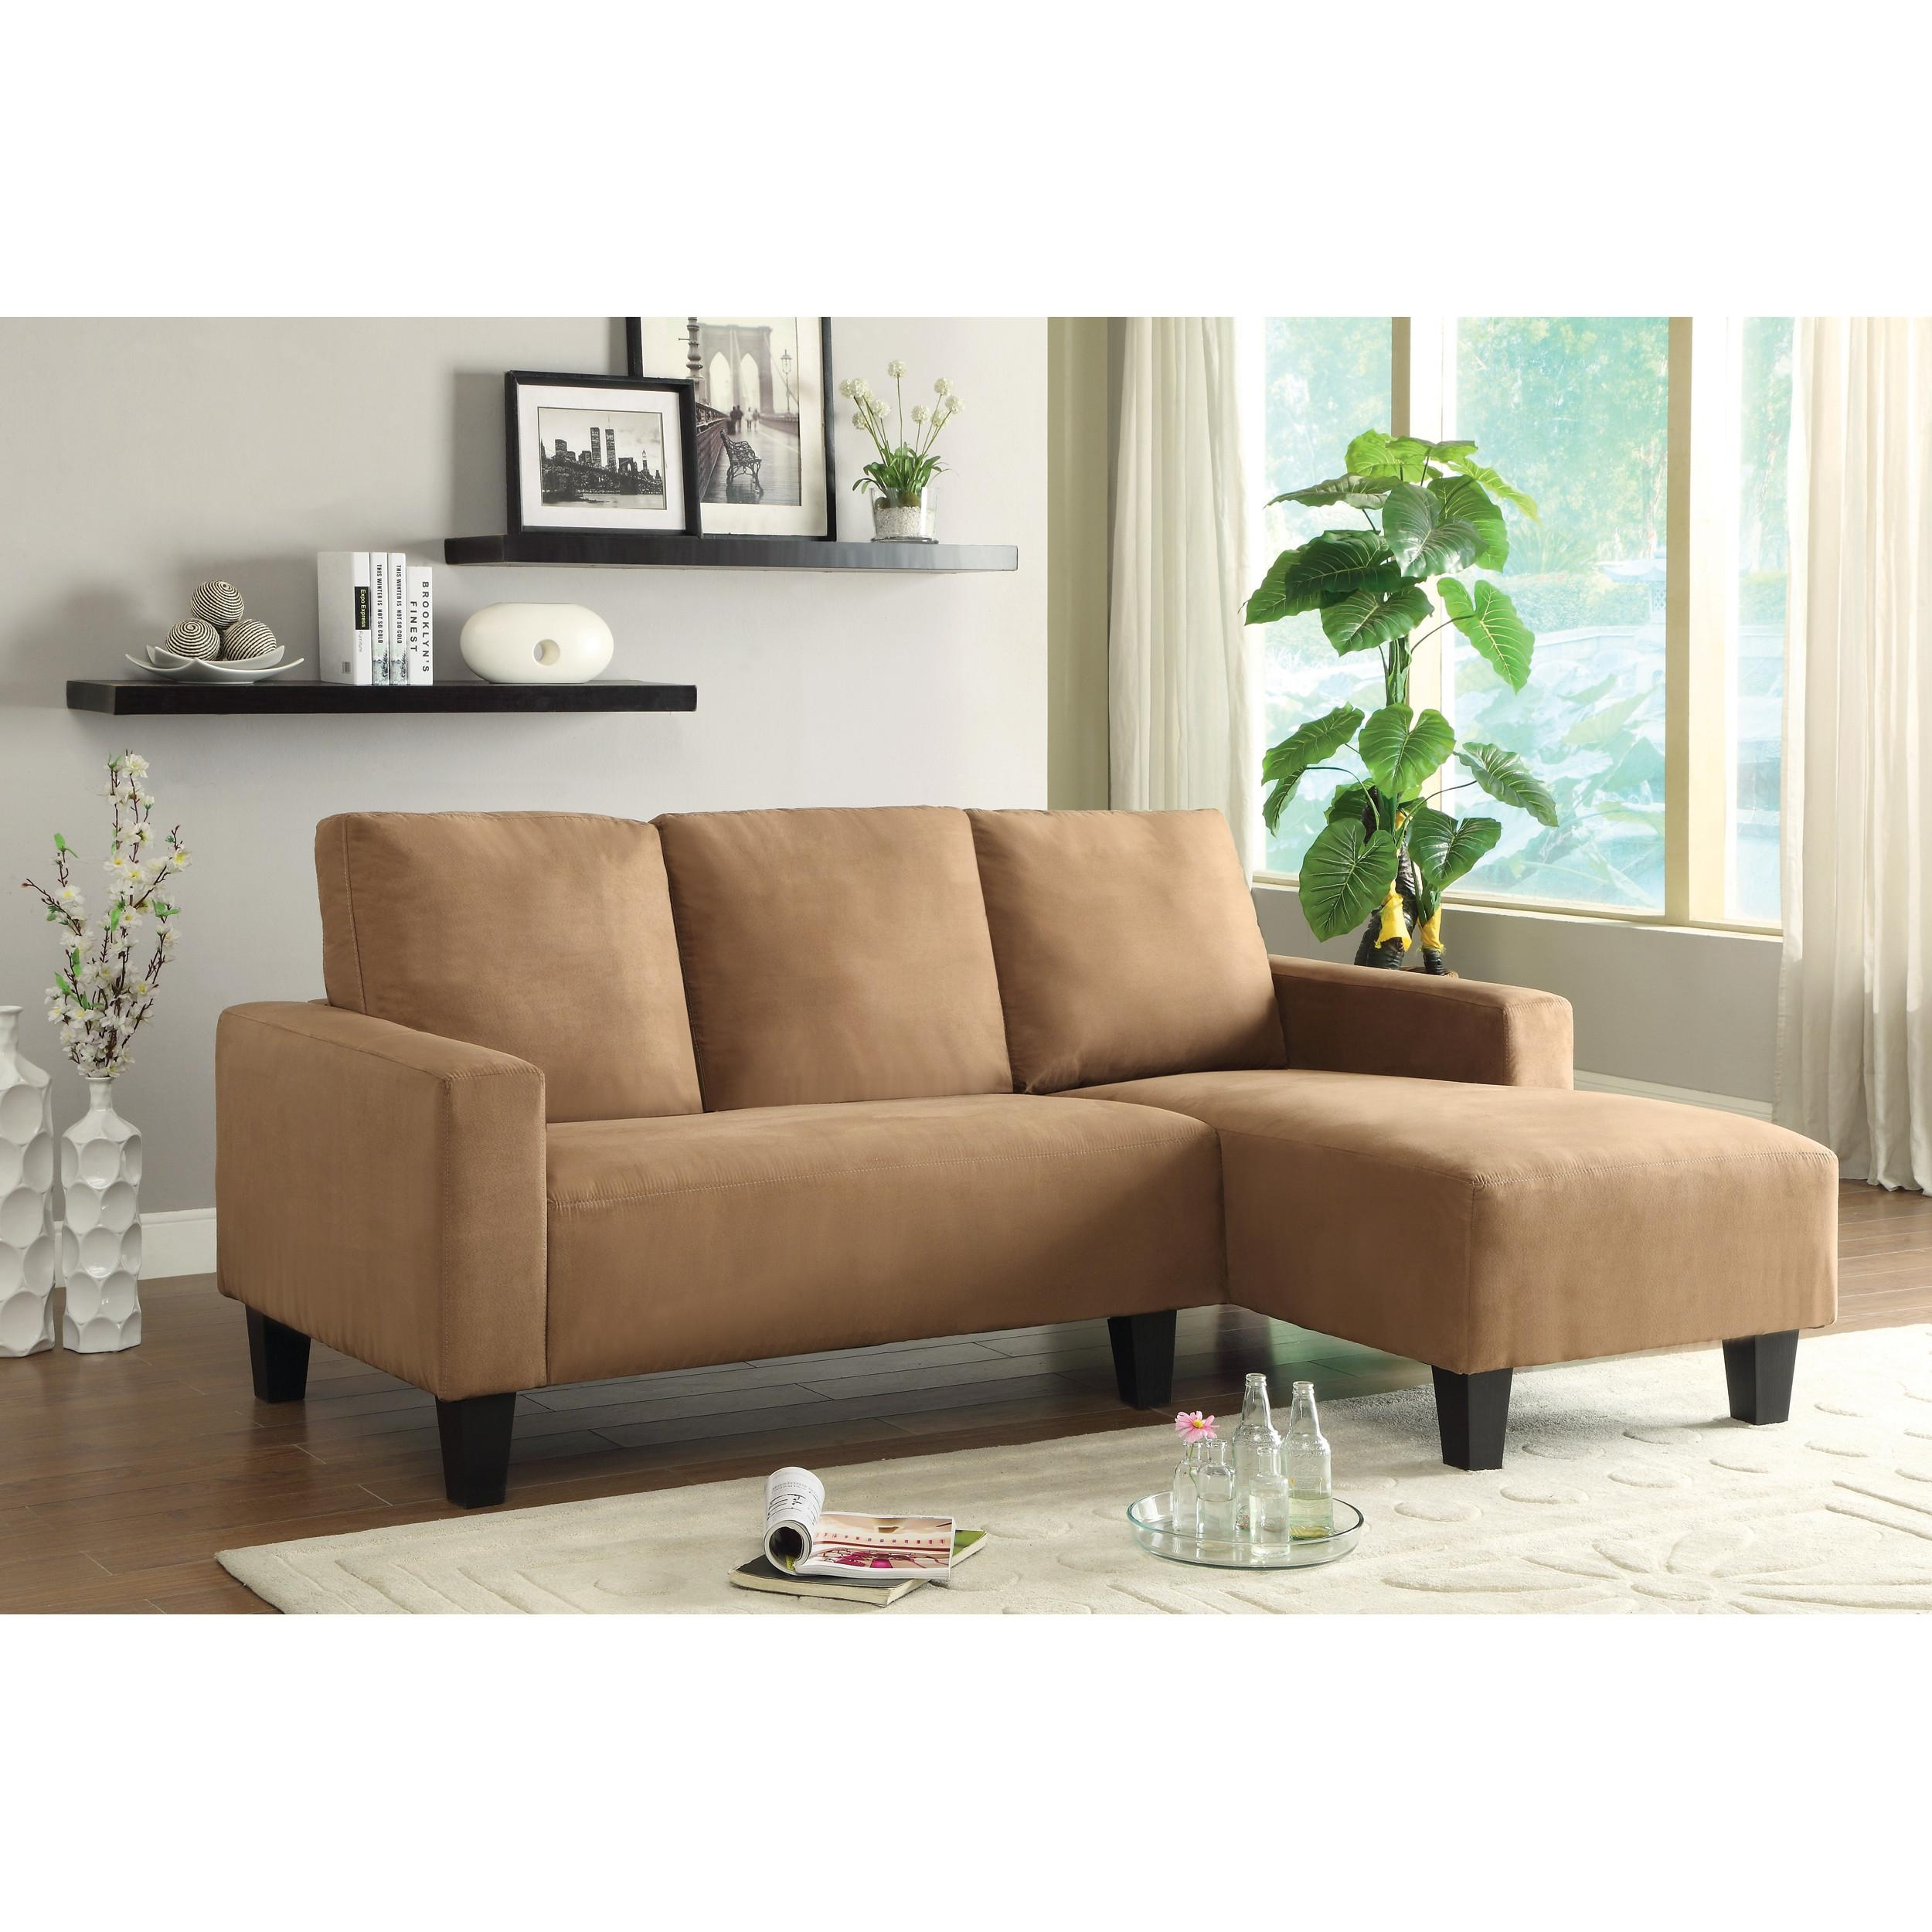 Furniture Home : New Discounted Sectional Sofa 14 About Remodel Within Discounted Sectional Sofa (Image 5 of 15)